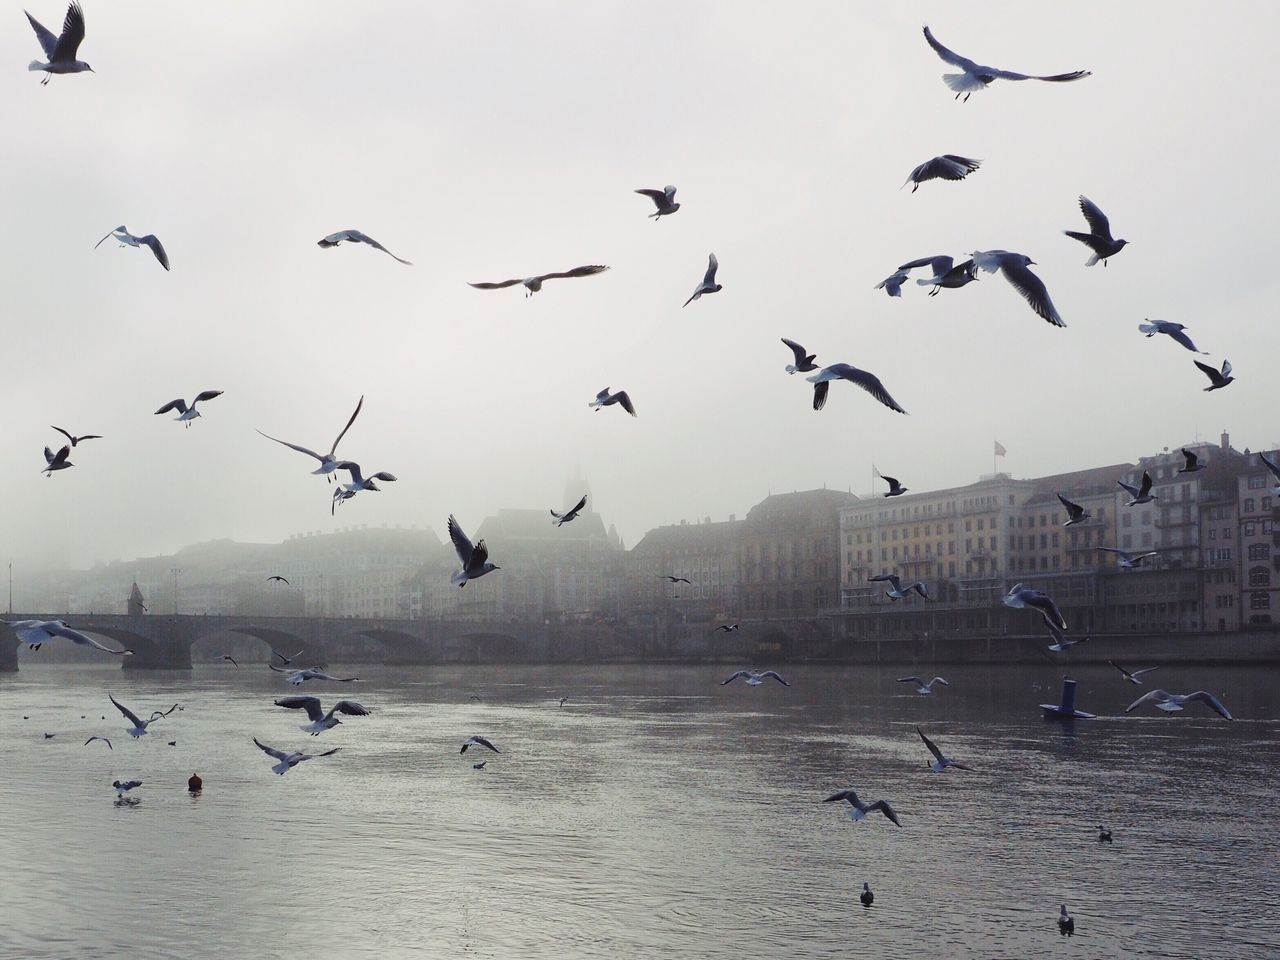 Bird Flying Large Group Of Animals Animal Themes Flock Of Birds Nature Outdoors Spread Wings Building Exterior Travel Destinations Water Cityscape Urban Landscape Fog Scenics at Basel, Switzerland